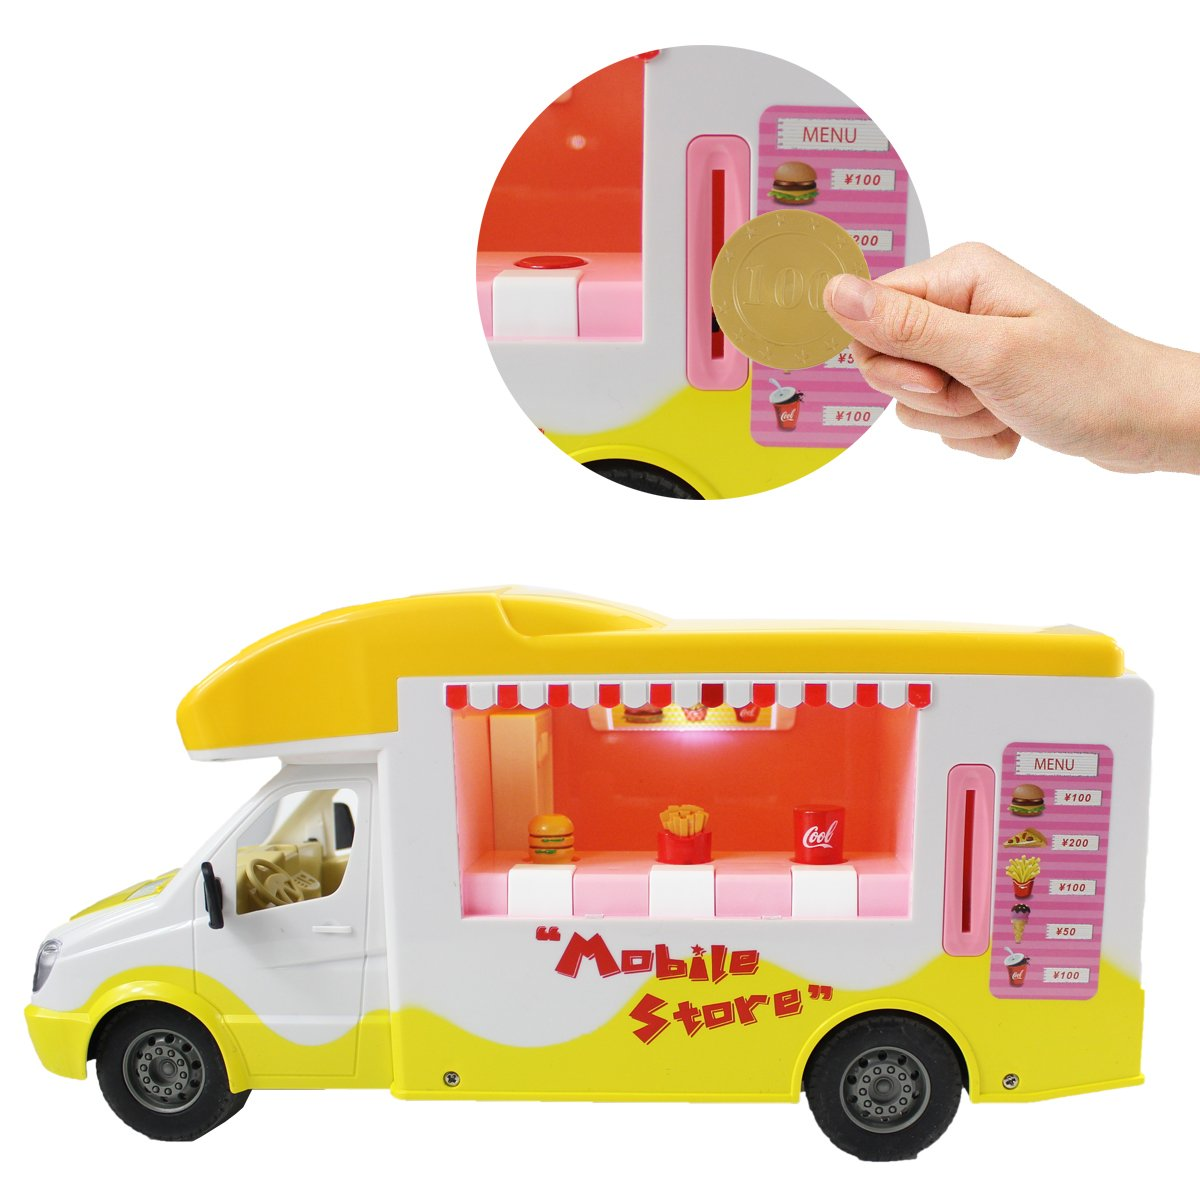 Fisca RC Vending Truck Remote Control Self-Service Buffet Car, 2.4Ghz Fast Food Mobile Store Electronic Toddlers Toy with Sounds and Lights for Kids